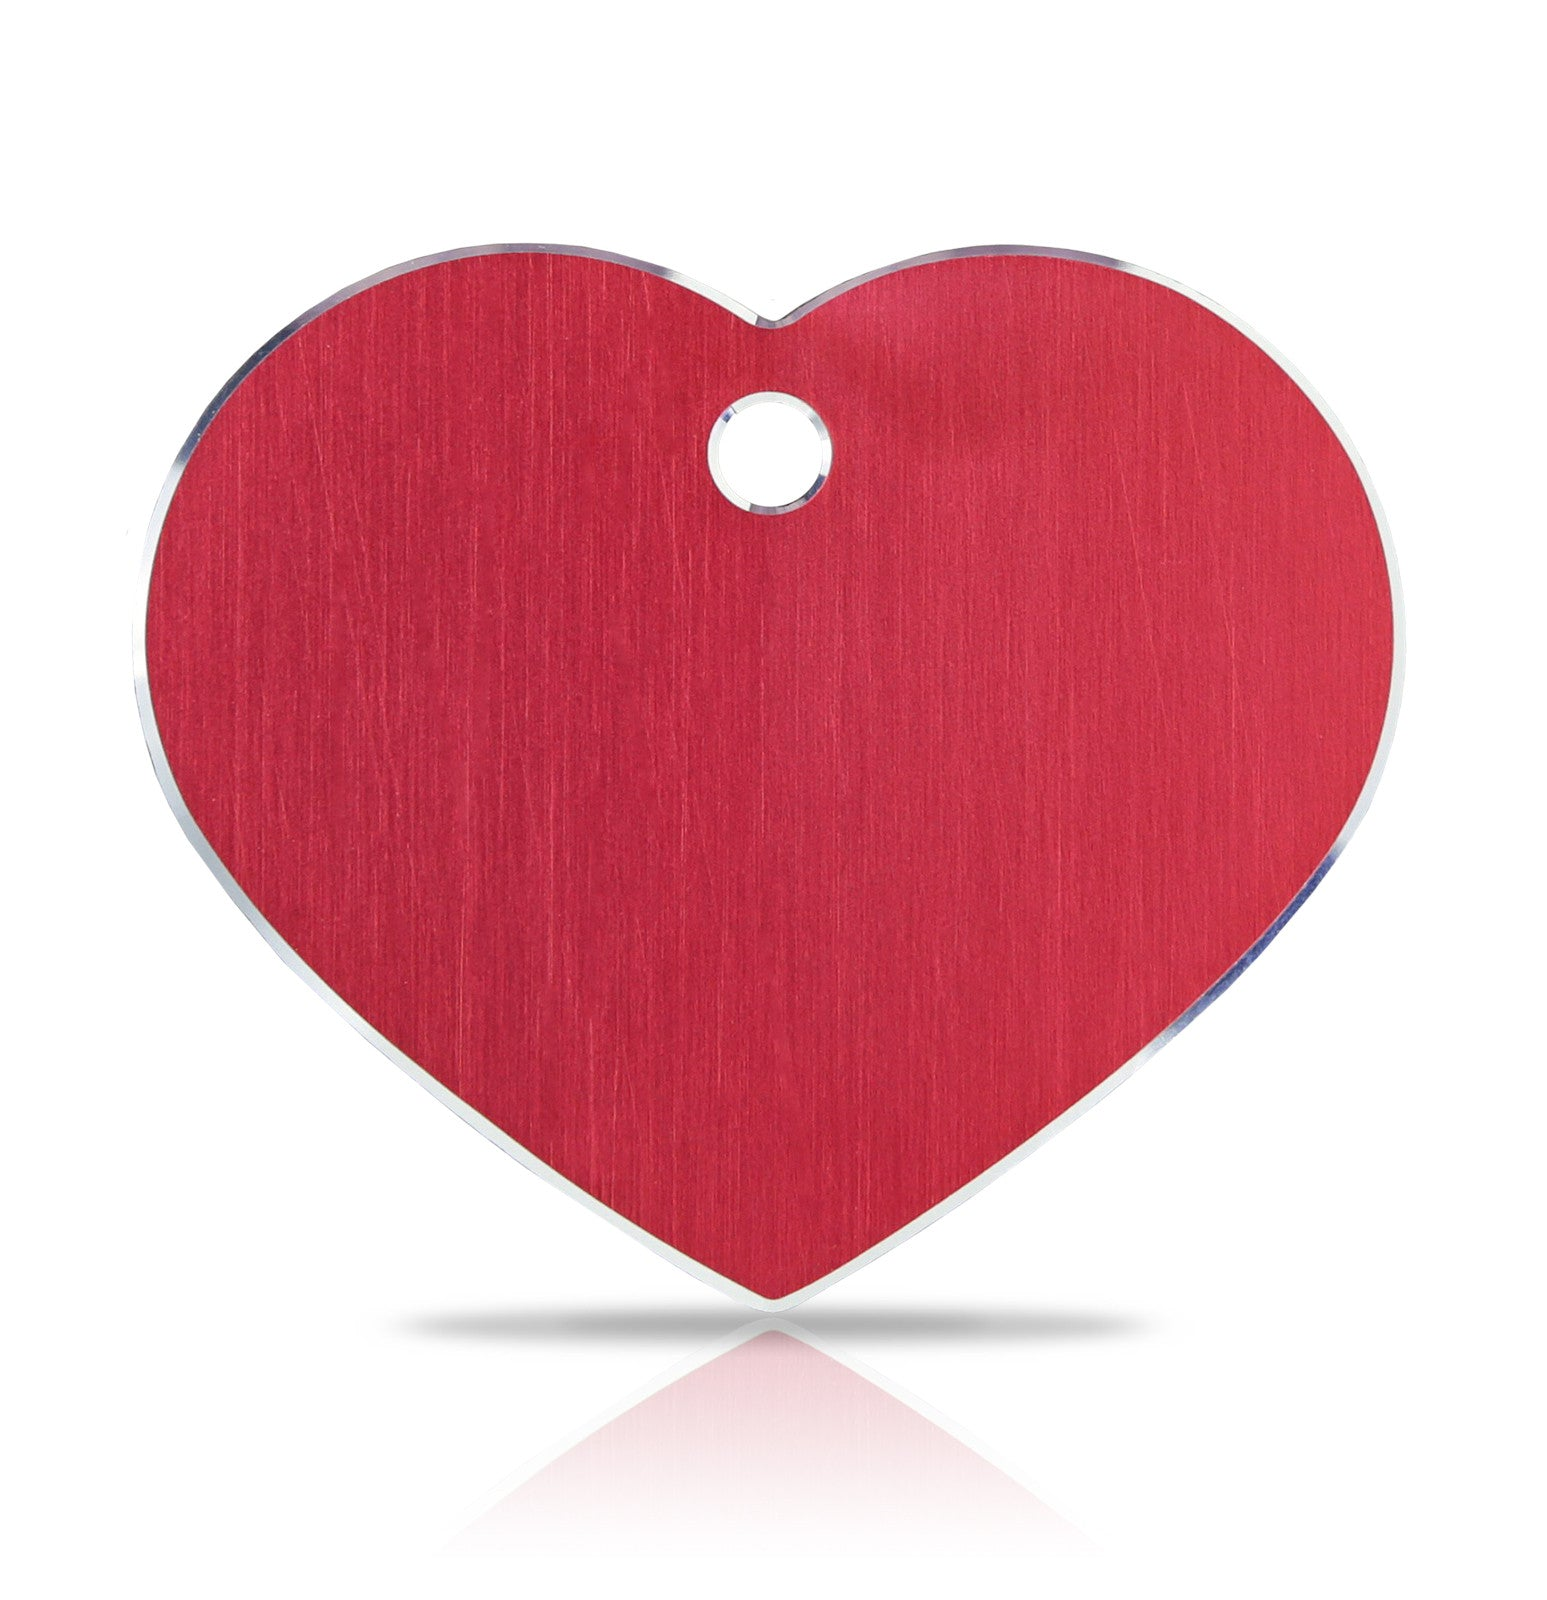 Taggit Engraving Large Hearts For Imarc Engraving Machines